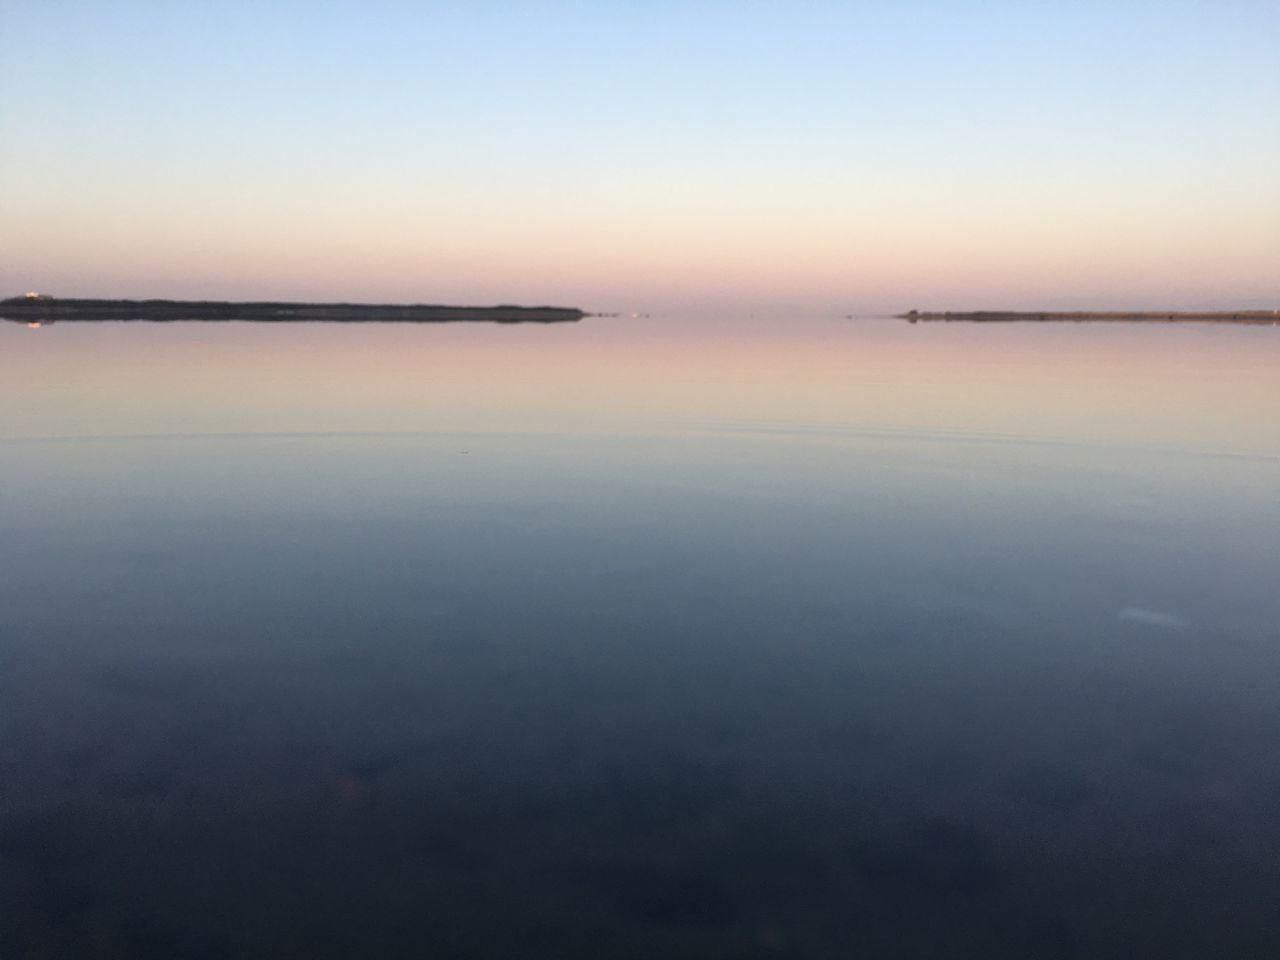 tranquility, tranquil scene, nature, beauty in nature, scenics, sunset, sky, idyllic, water, reflection, outdoors, waterfront, dusk, no people, sea, clear sky, landscape, horizon over water, day